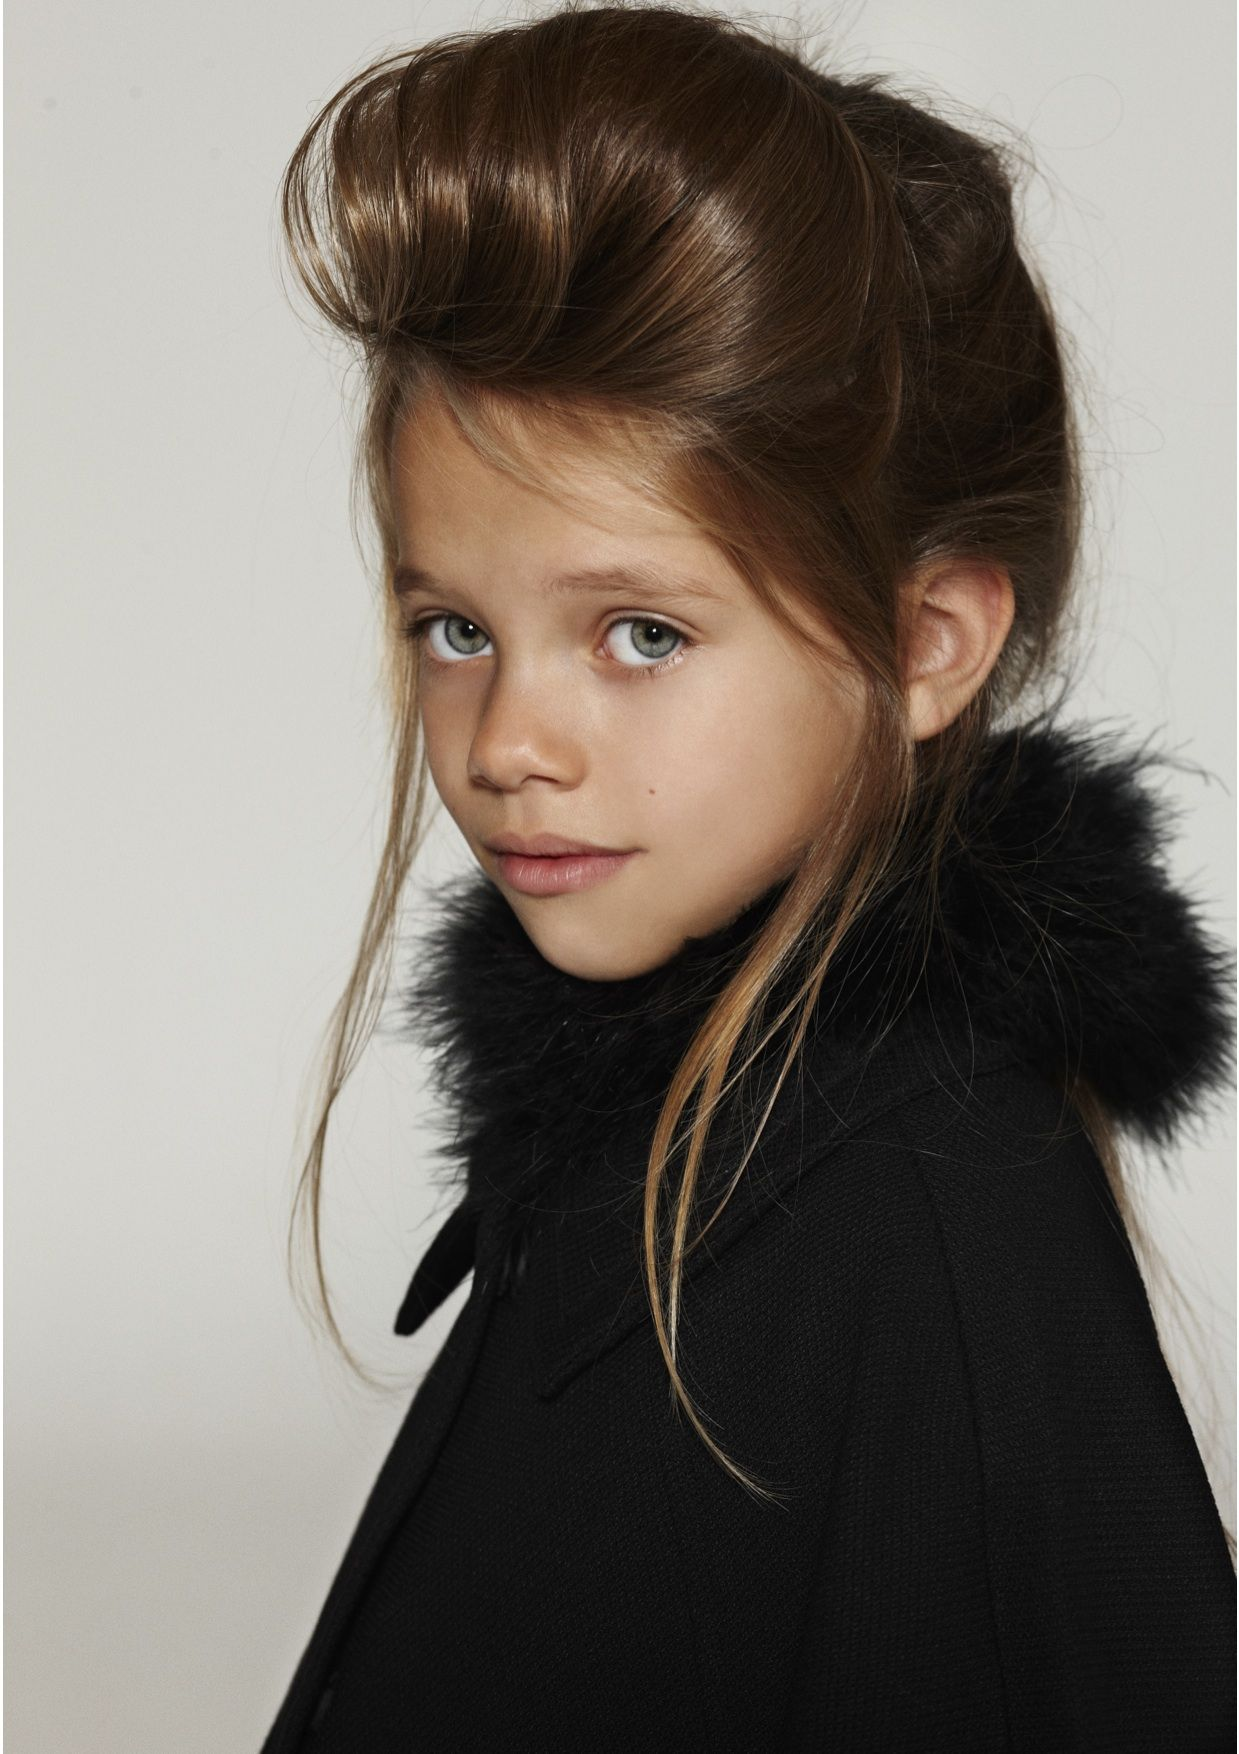 kids test // idea and styling: styleplay.dk // photo: klercke.dk // hair and makeup: zaeschke.dk // girl from little-people.dk